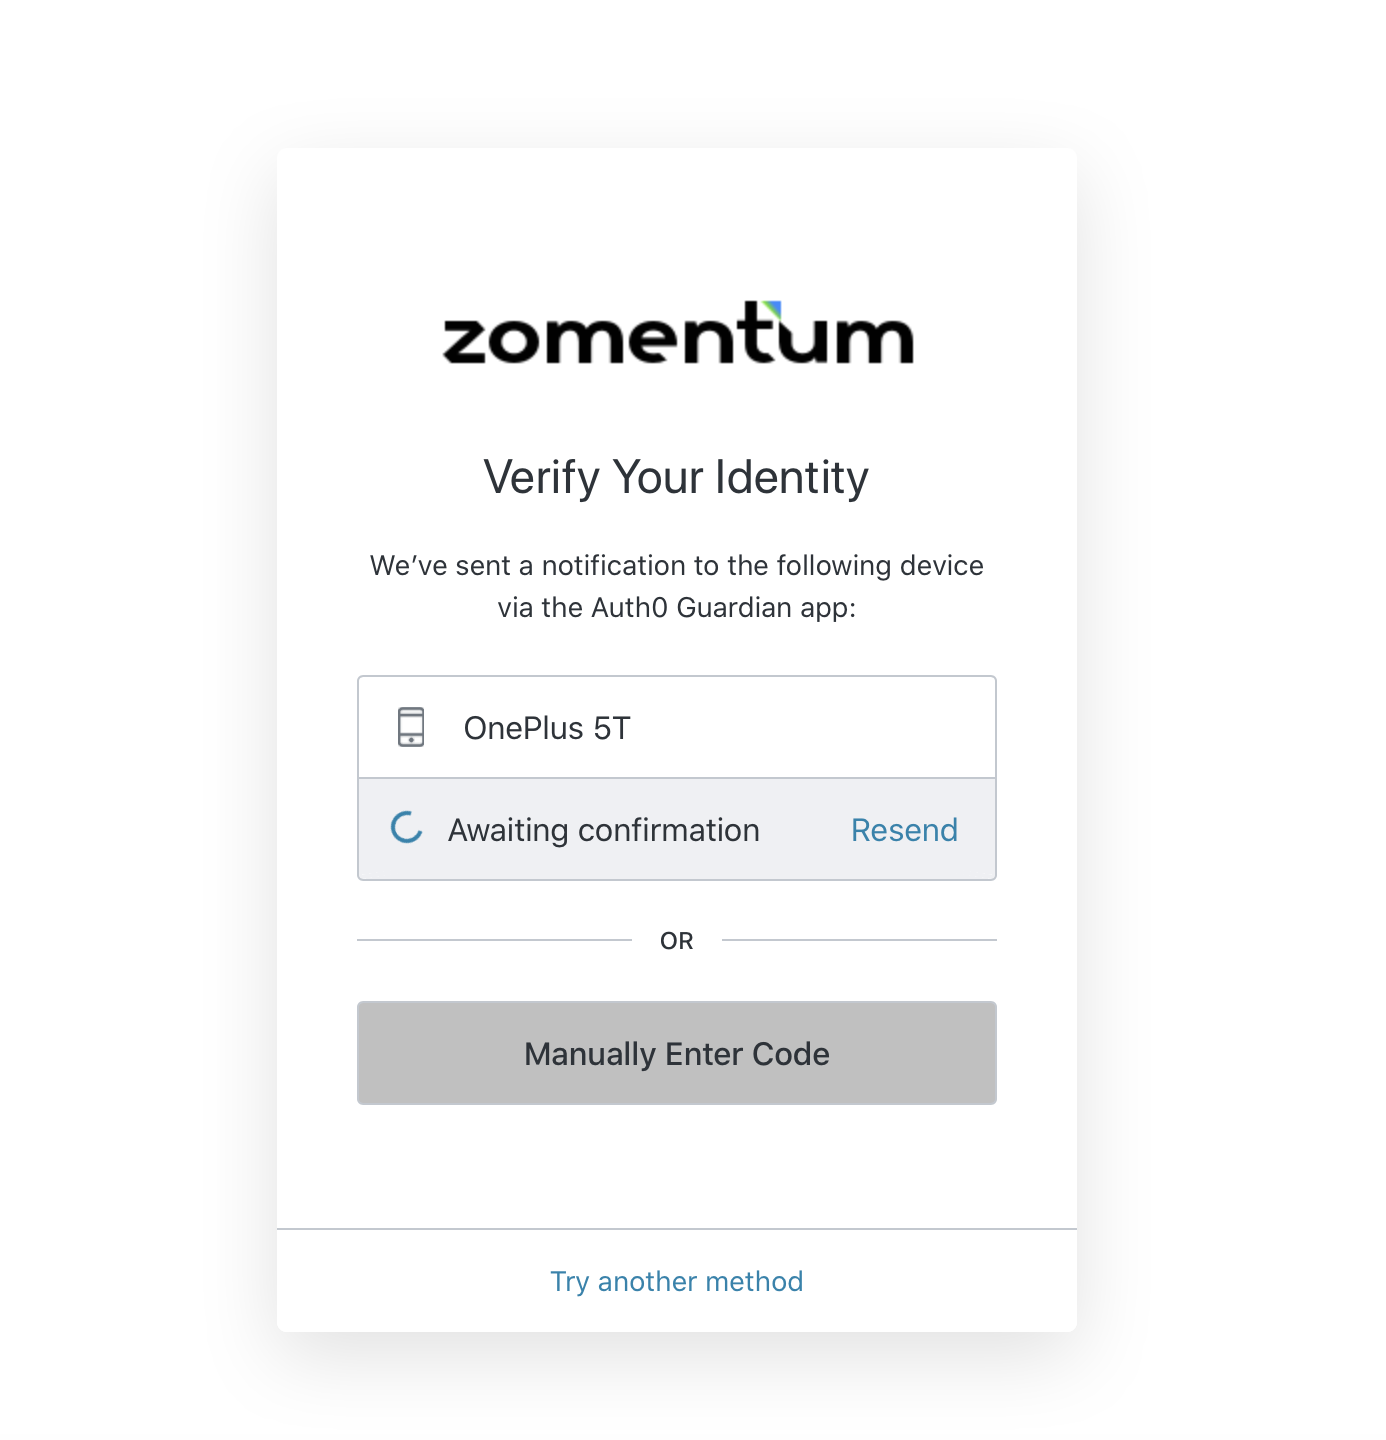 More security with Two-Factor authentication